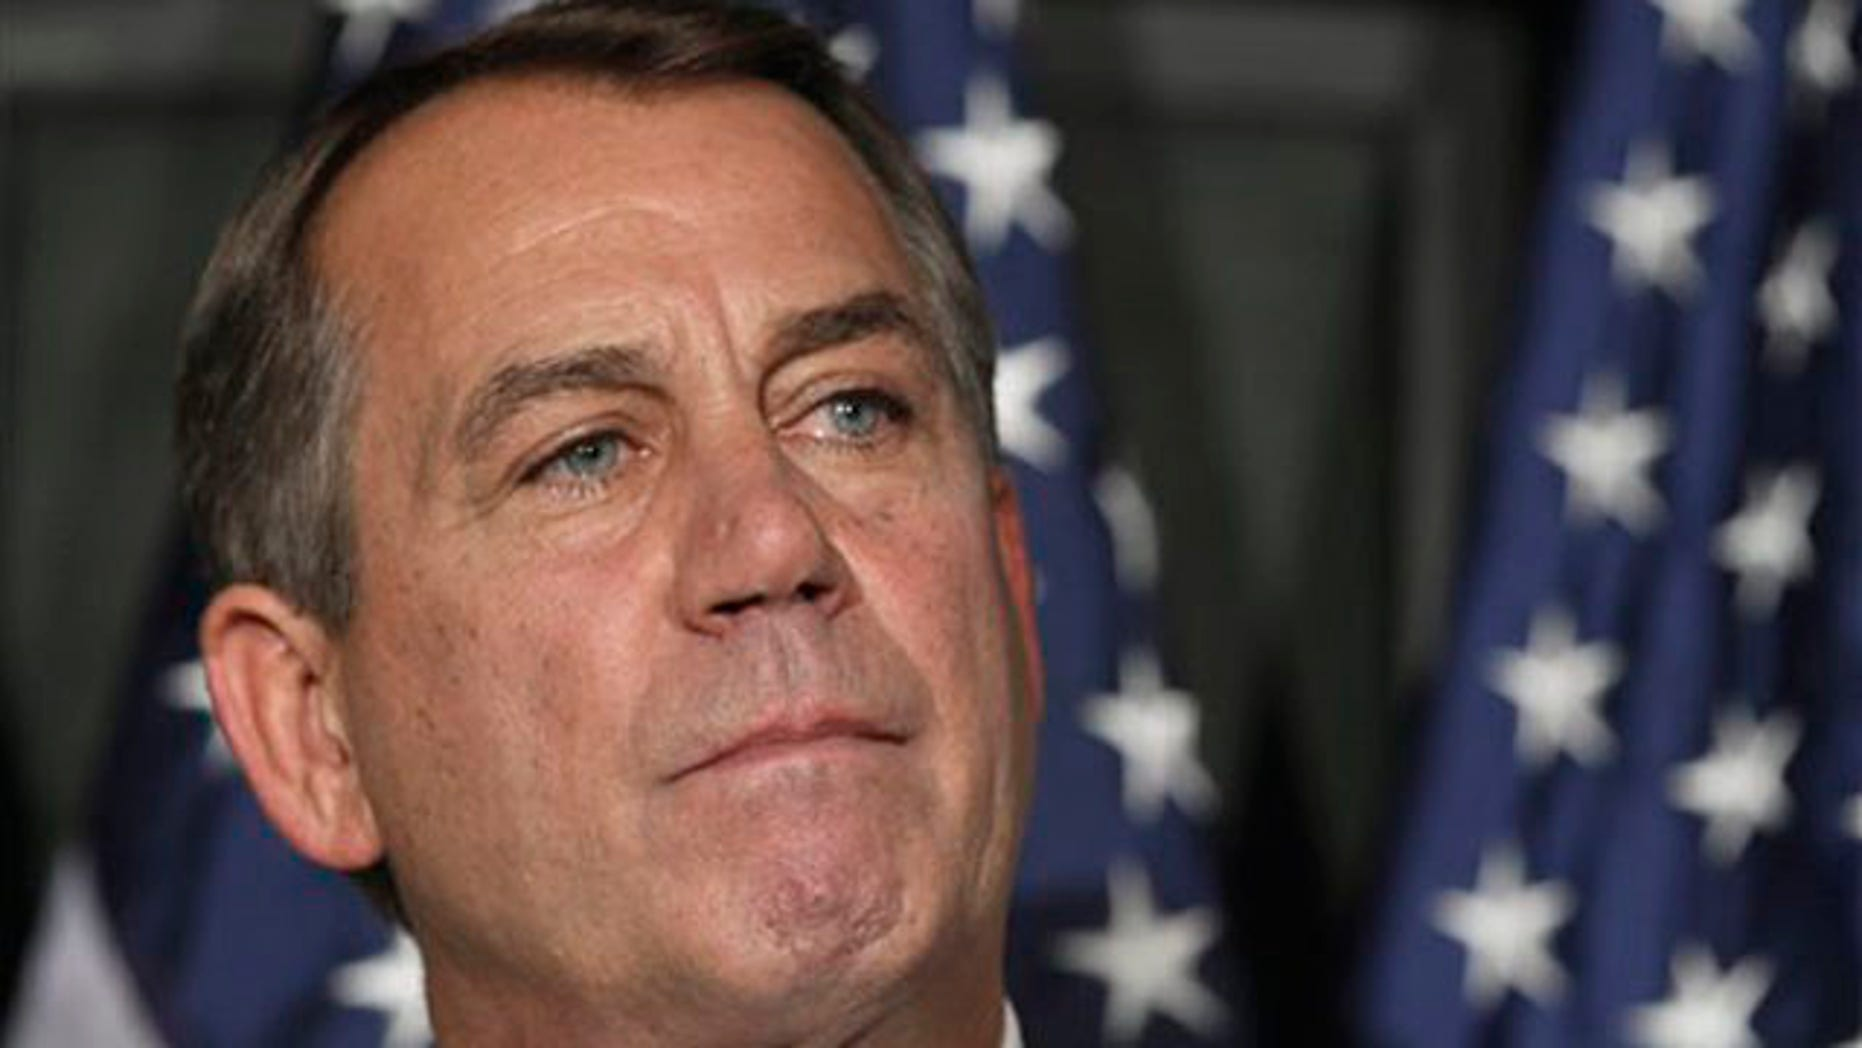 House Speaker John Boehner pauses during a news conference at The Republican National Committee on Capitol Hill in Washington July 26.